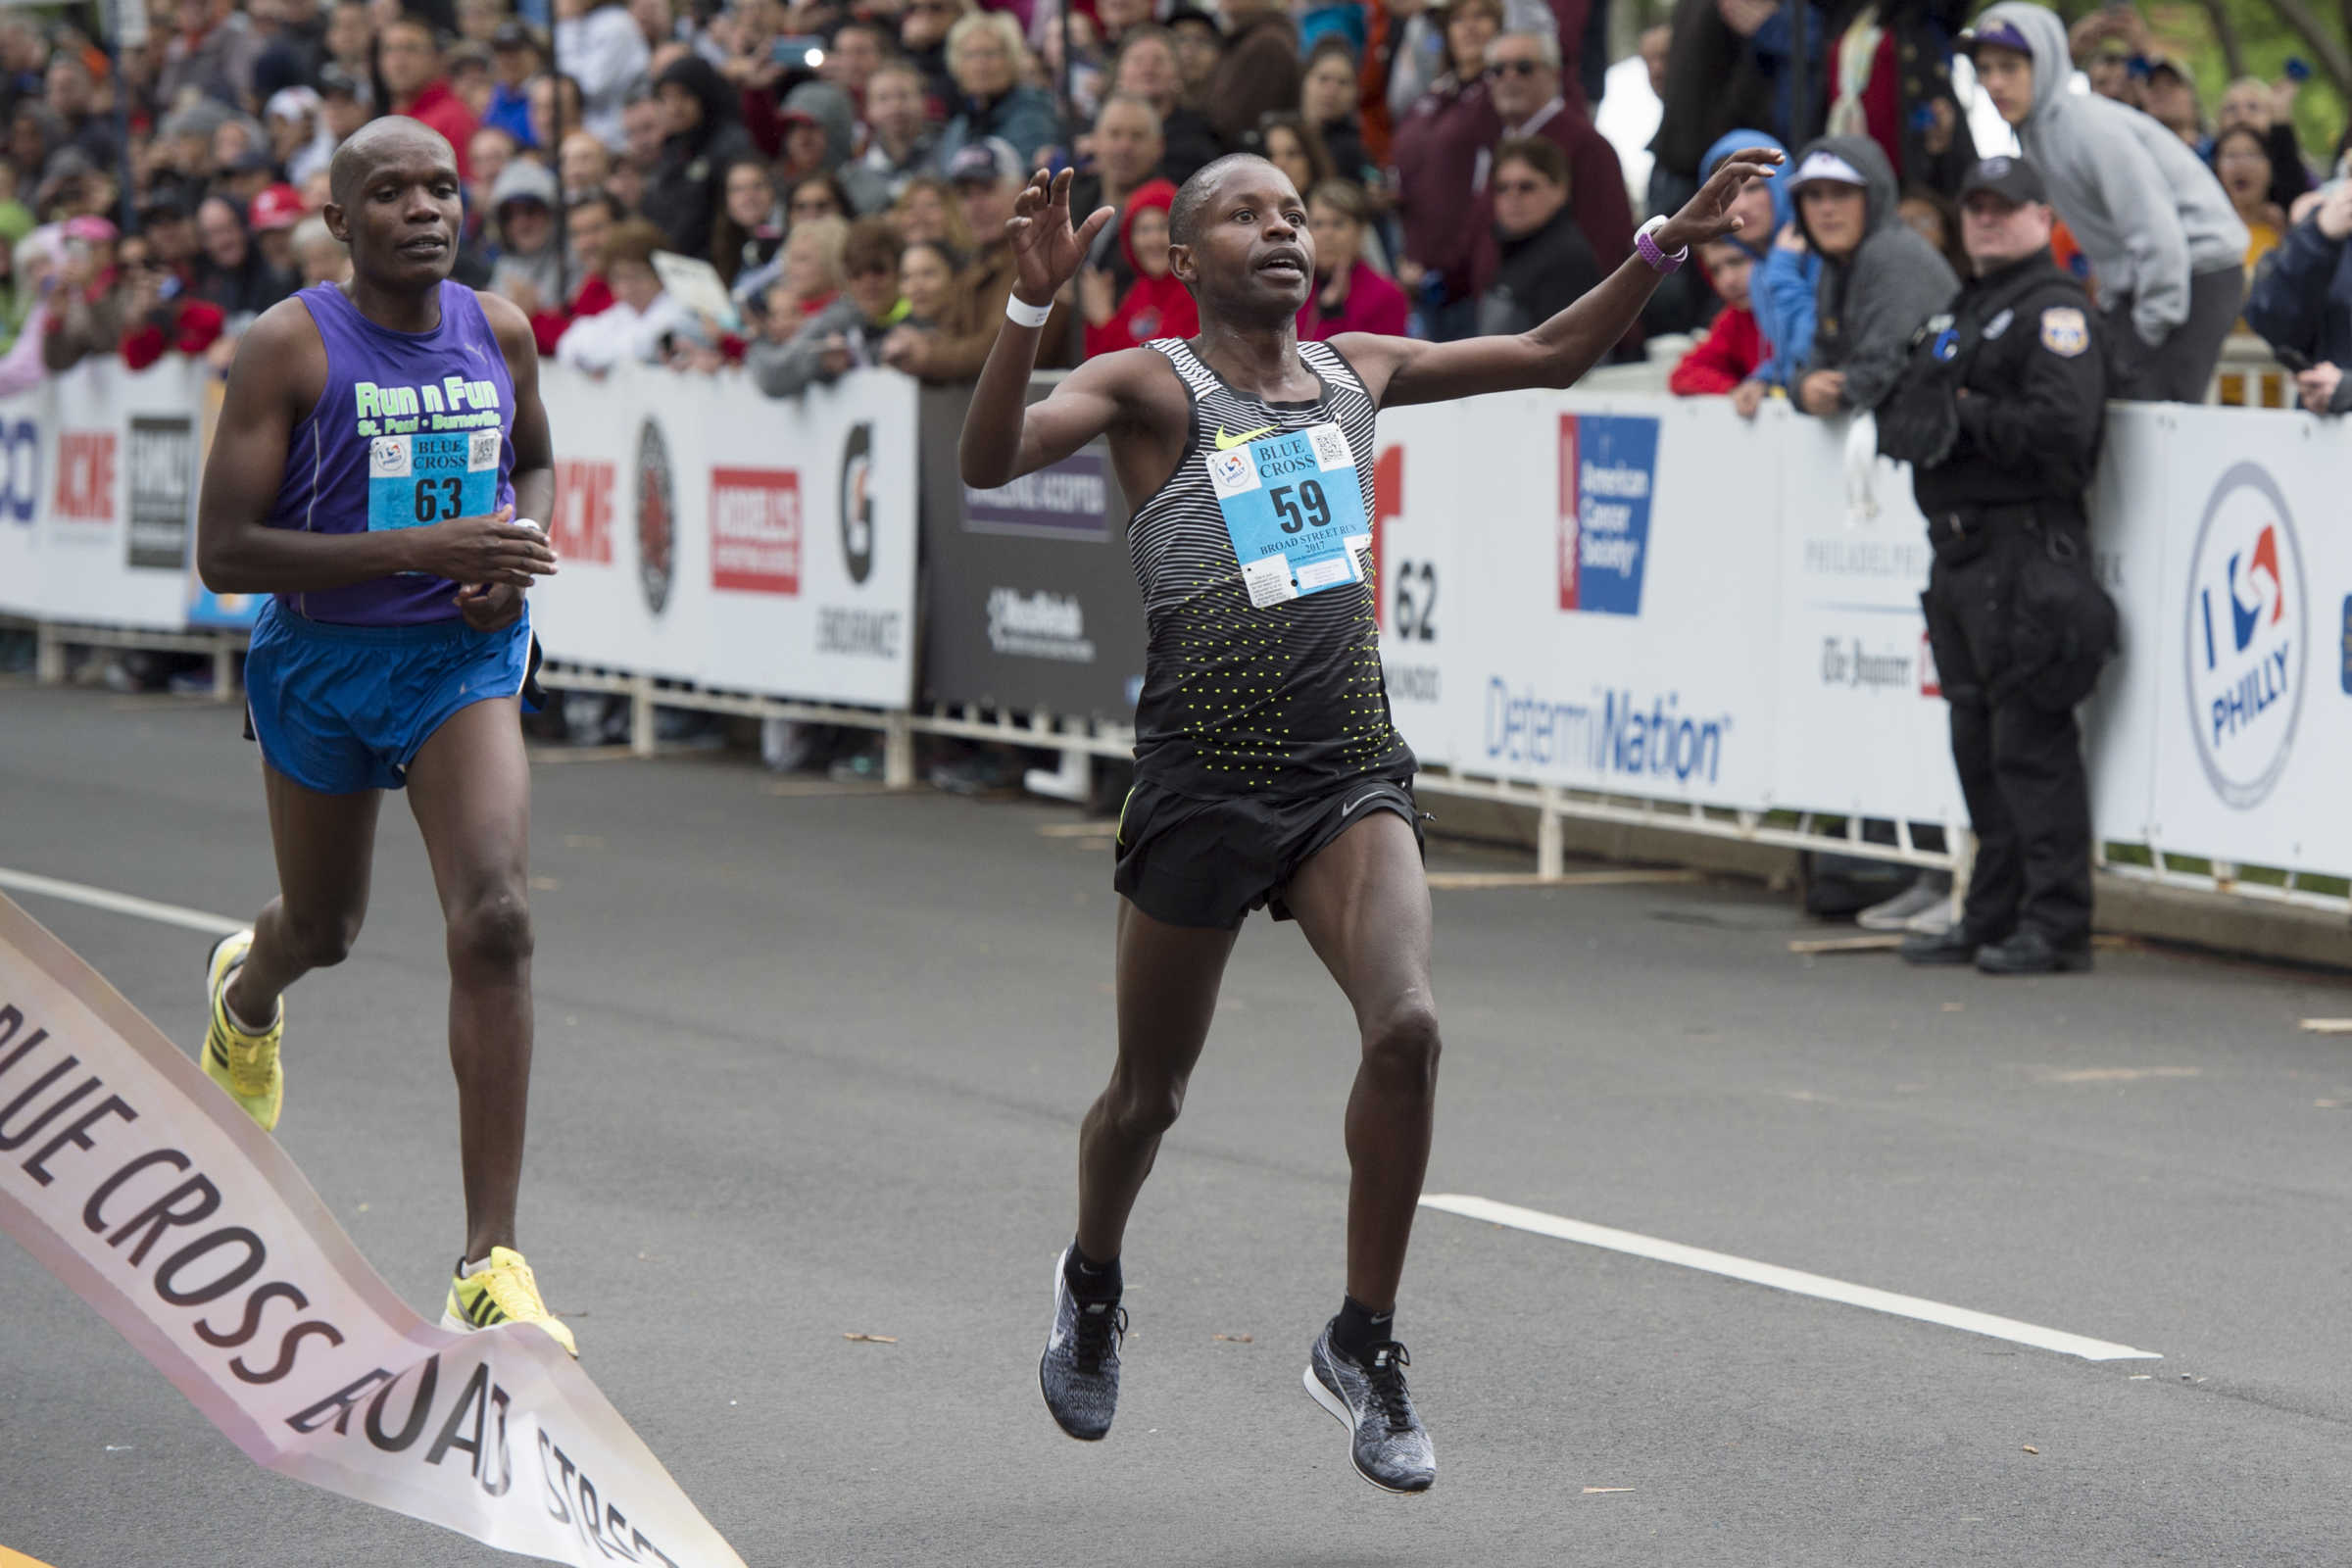 Dominic Korir (right) beats out Philip Mburu to finish first in the field of nearly 40,000 runners participating in the 38th annual Blue Cross Broad Street Run May 7,2017.